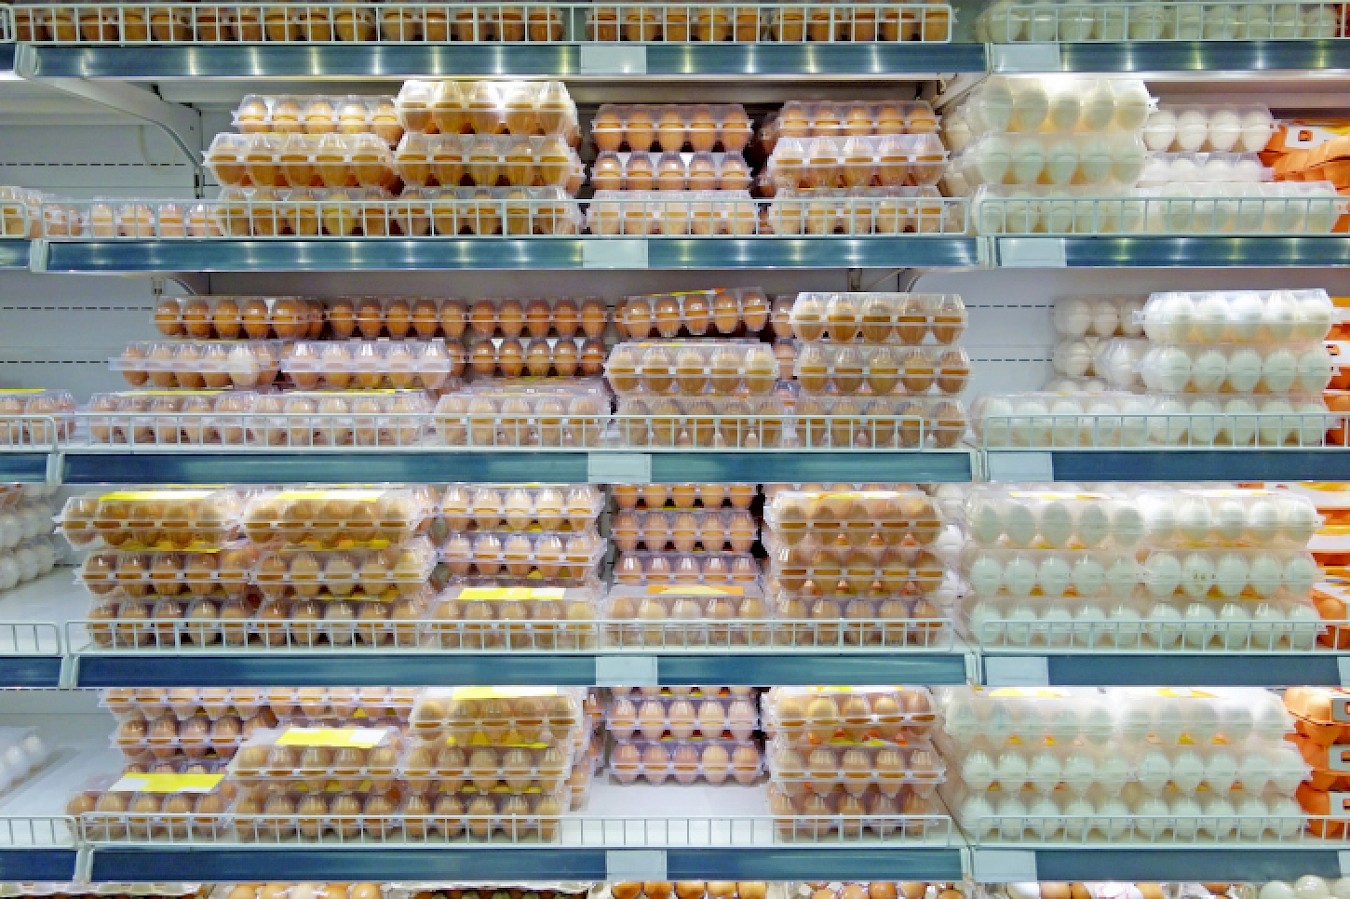 Six States to Appeal California Egg Law Decision